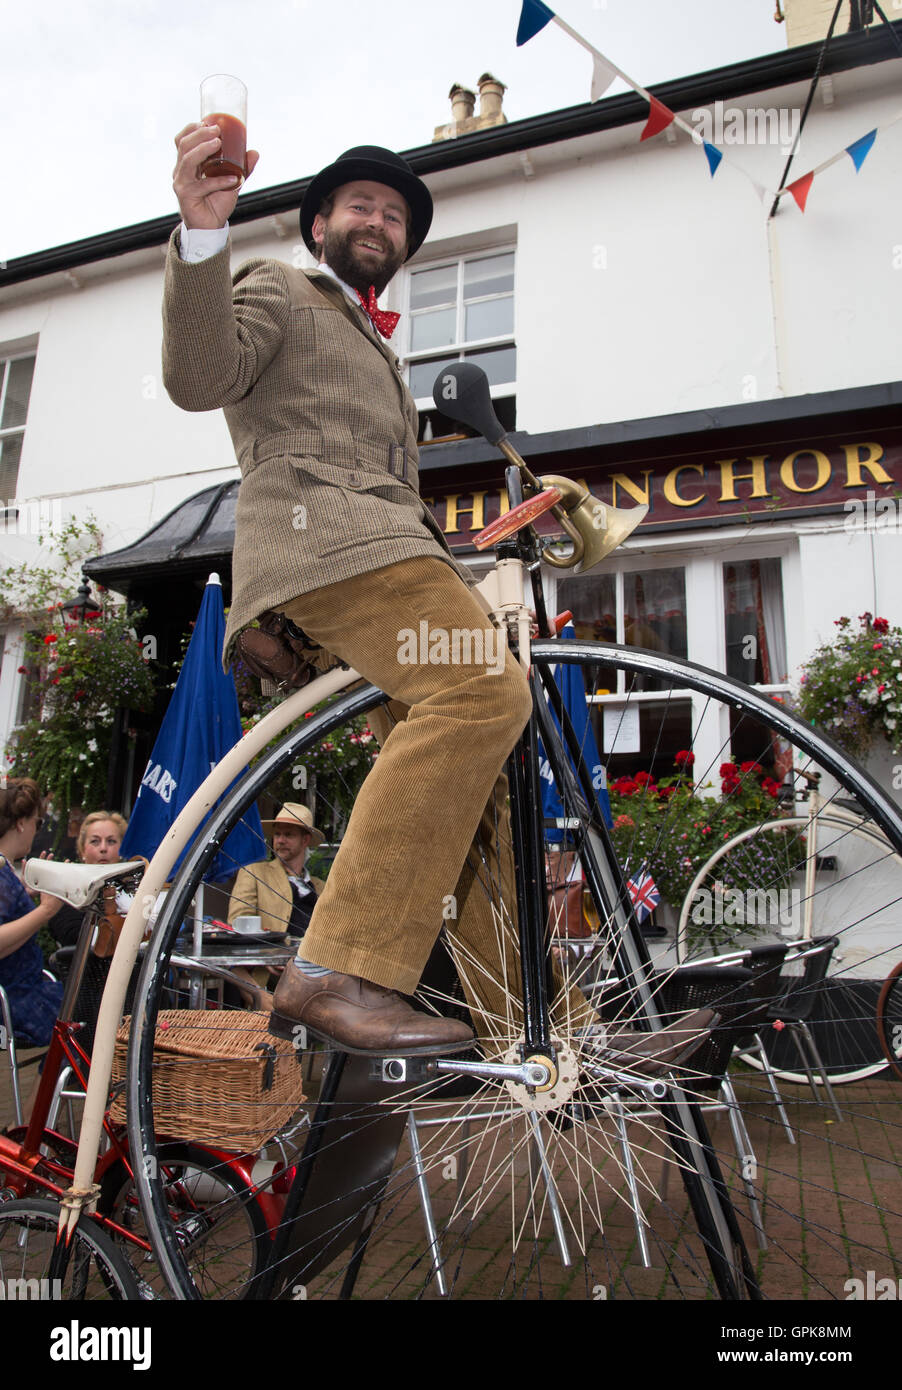 Sidmouth, Devon, 4th Sept 16. Sebastian Cope of vintage cyclists 'Velo Vintage', who were out and about - Stock Image